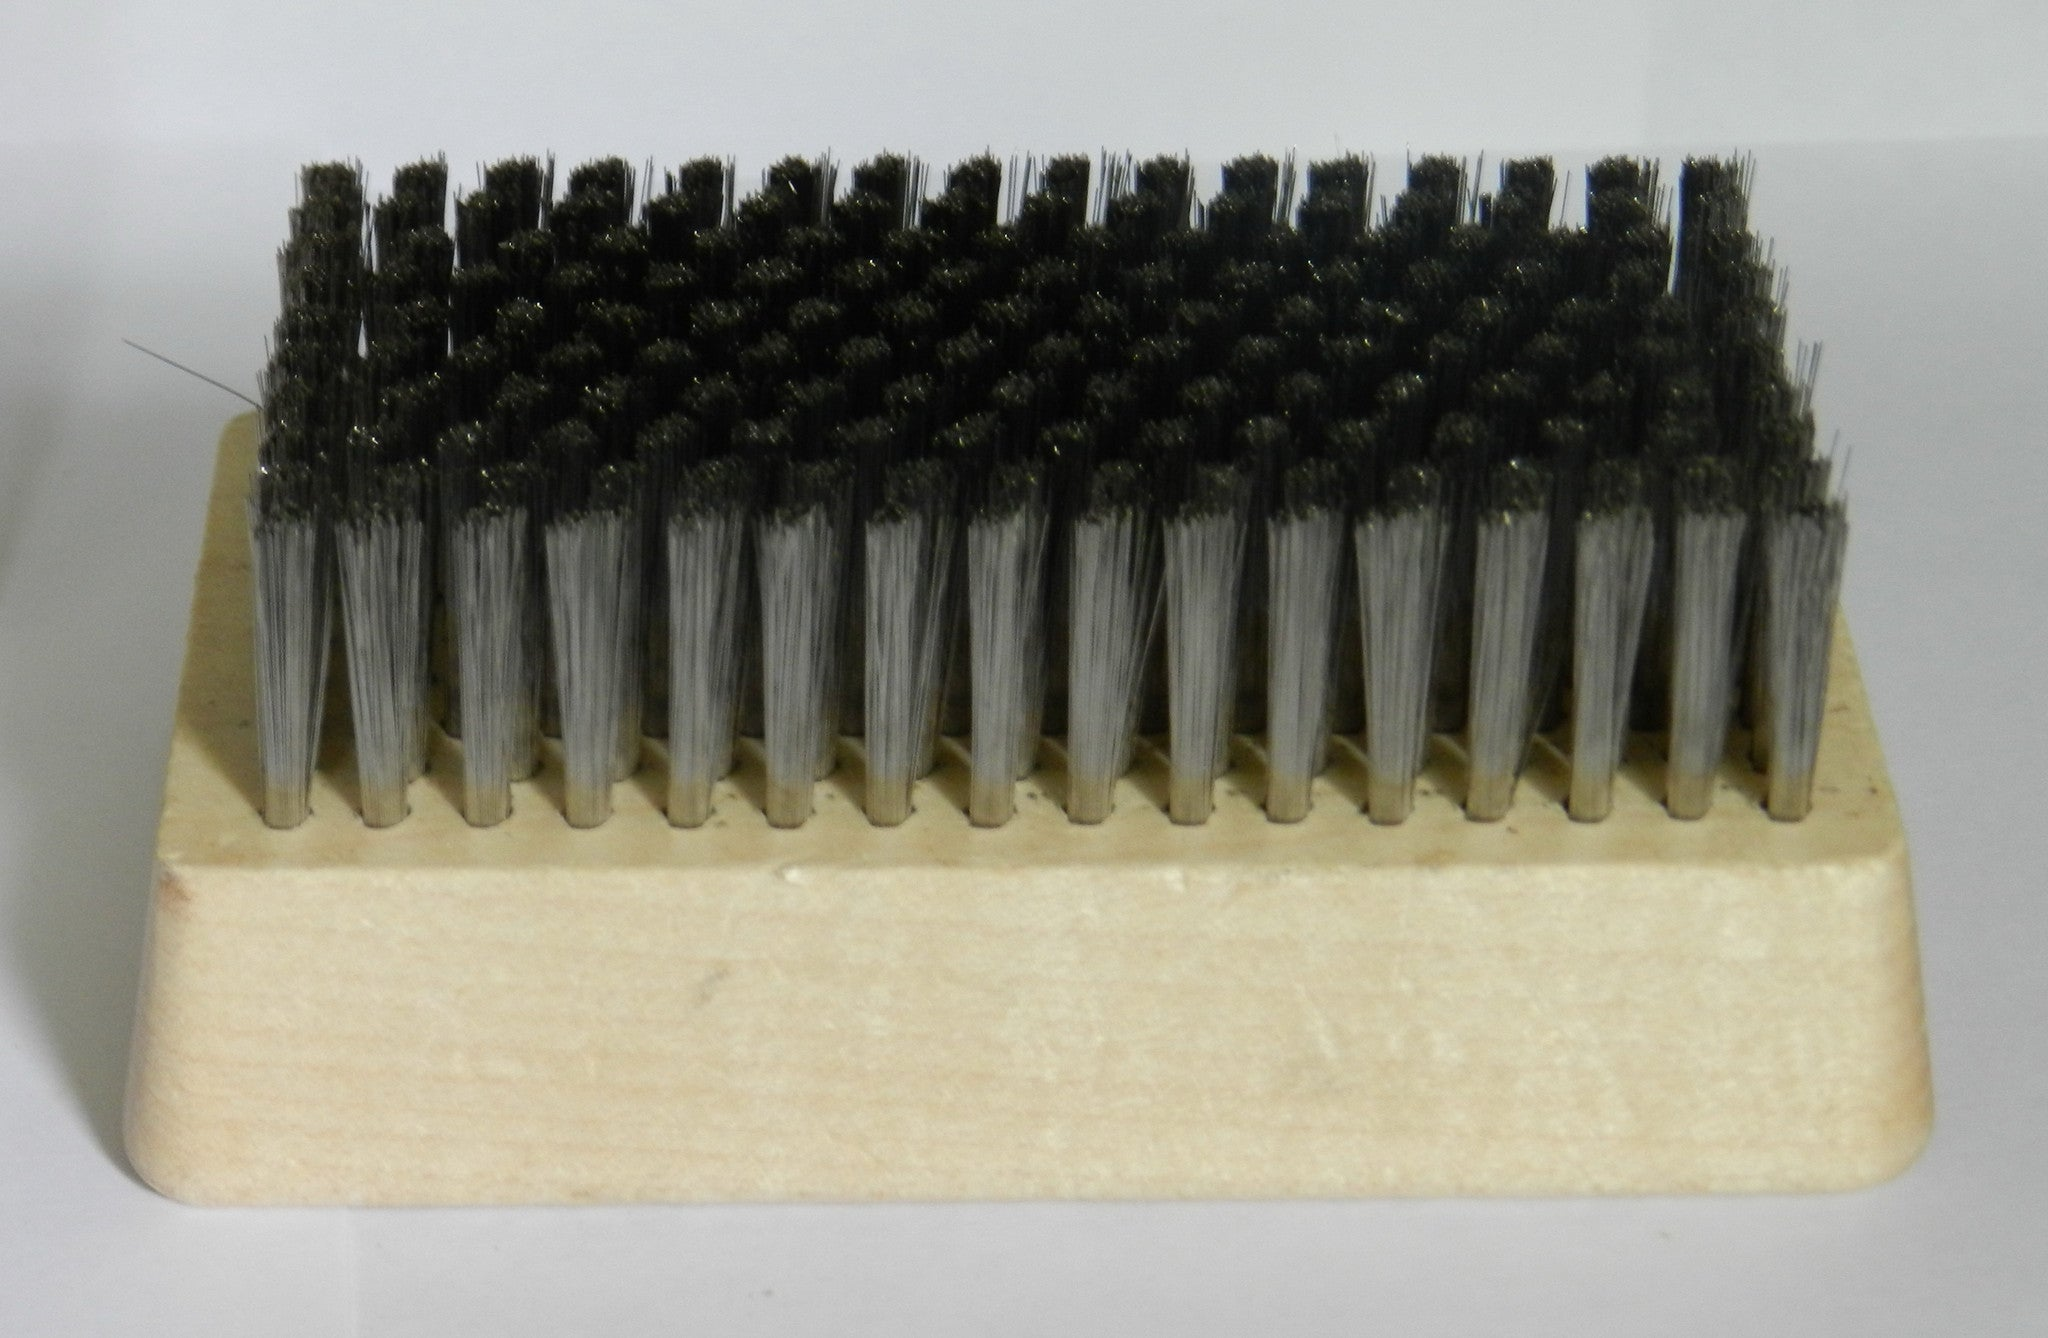 Waxing Stainless Steel Brush